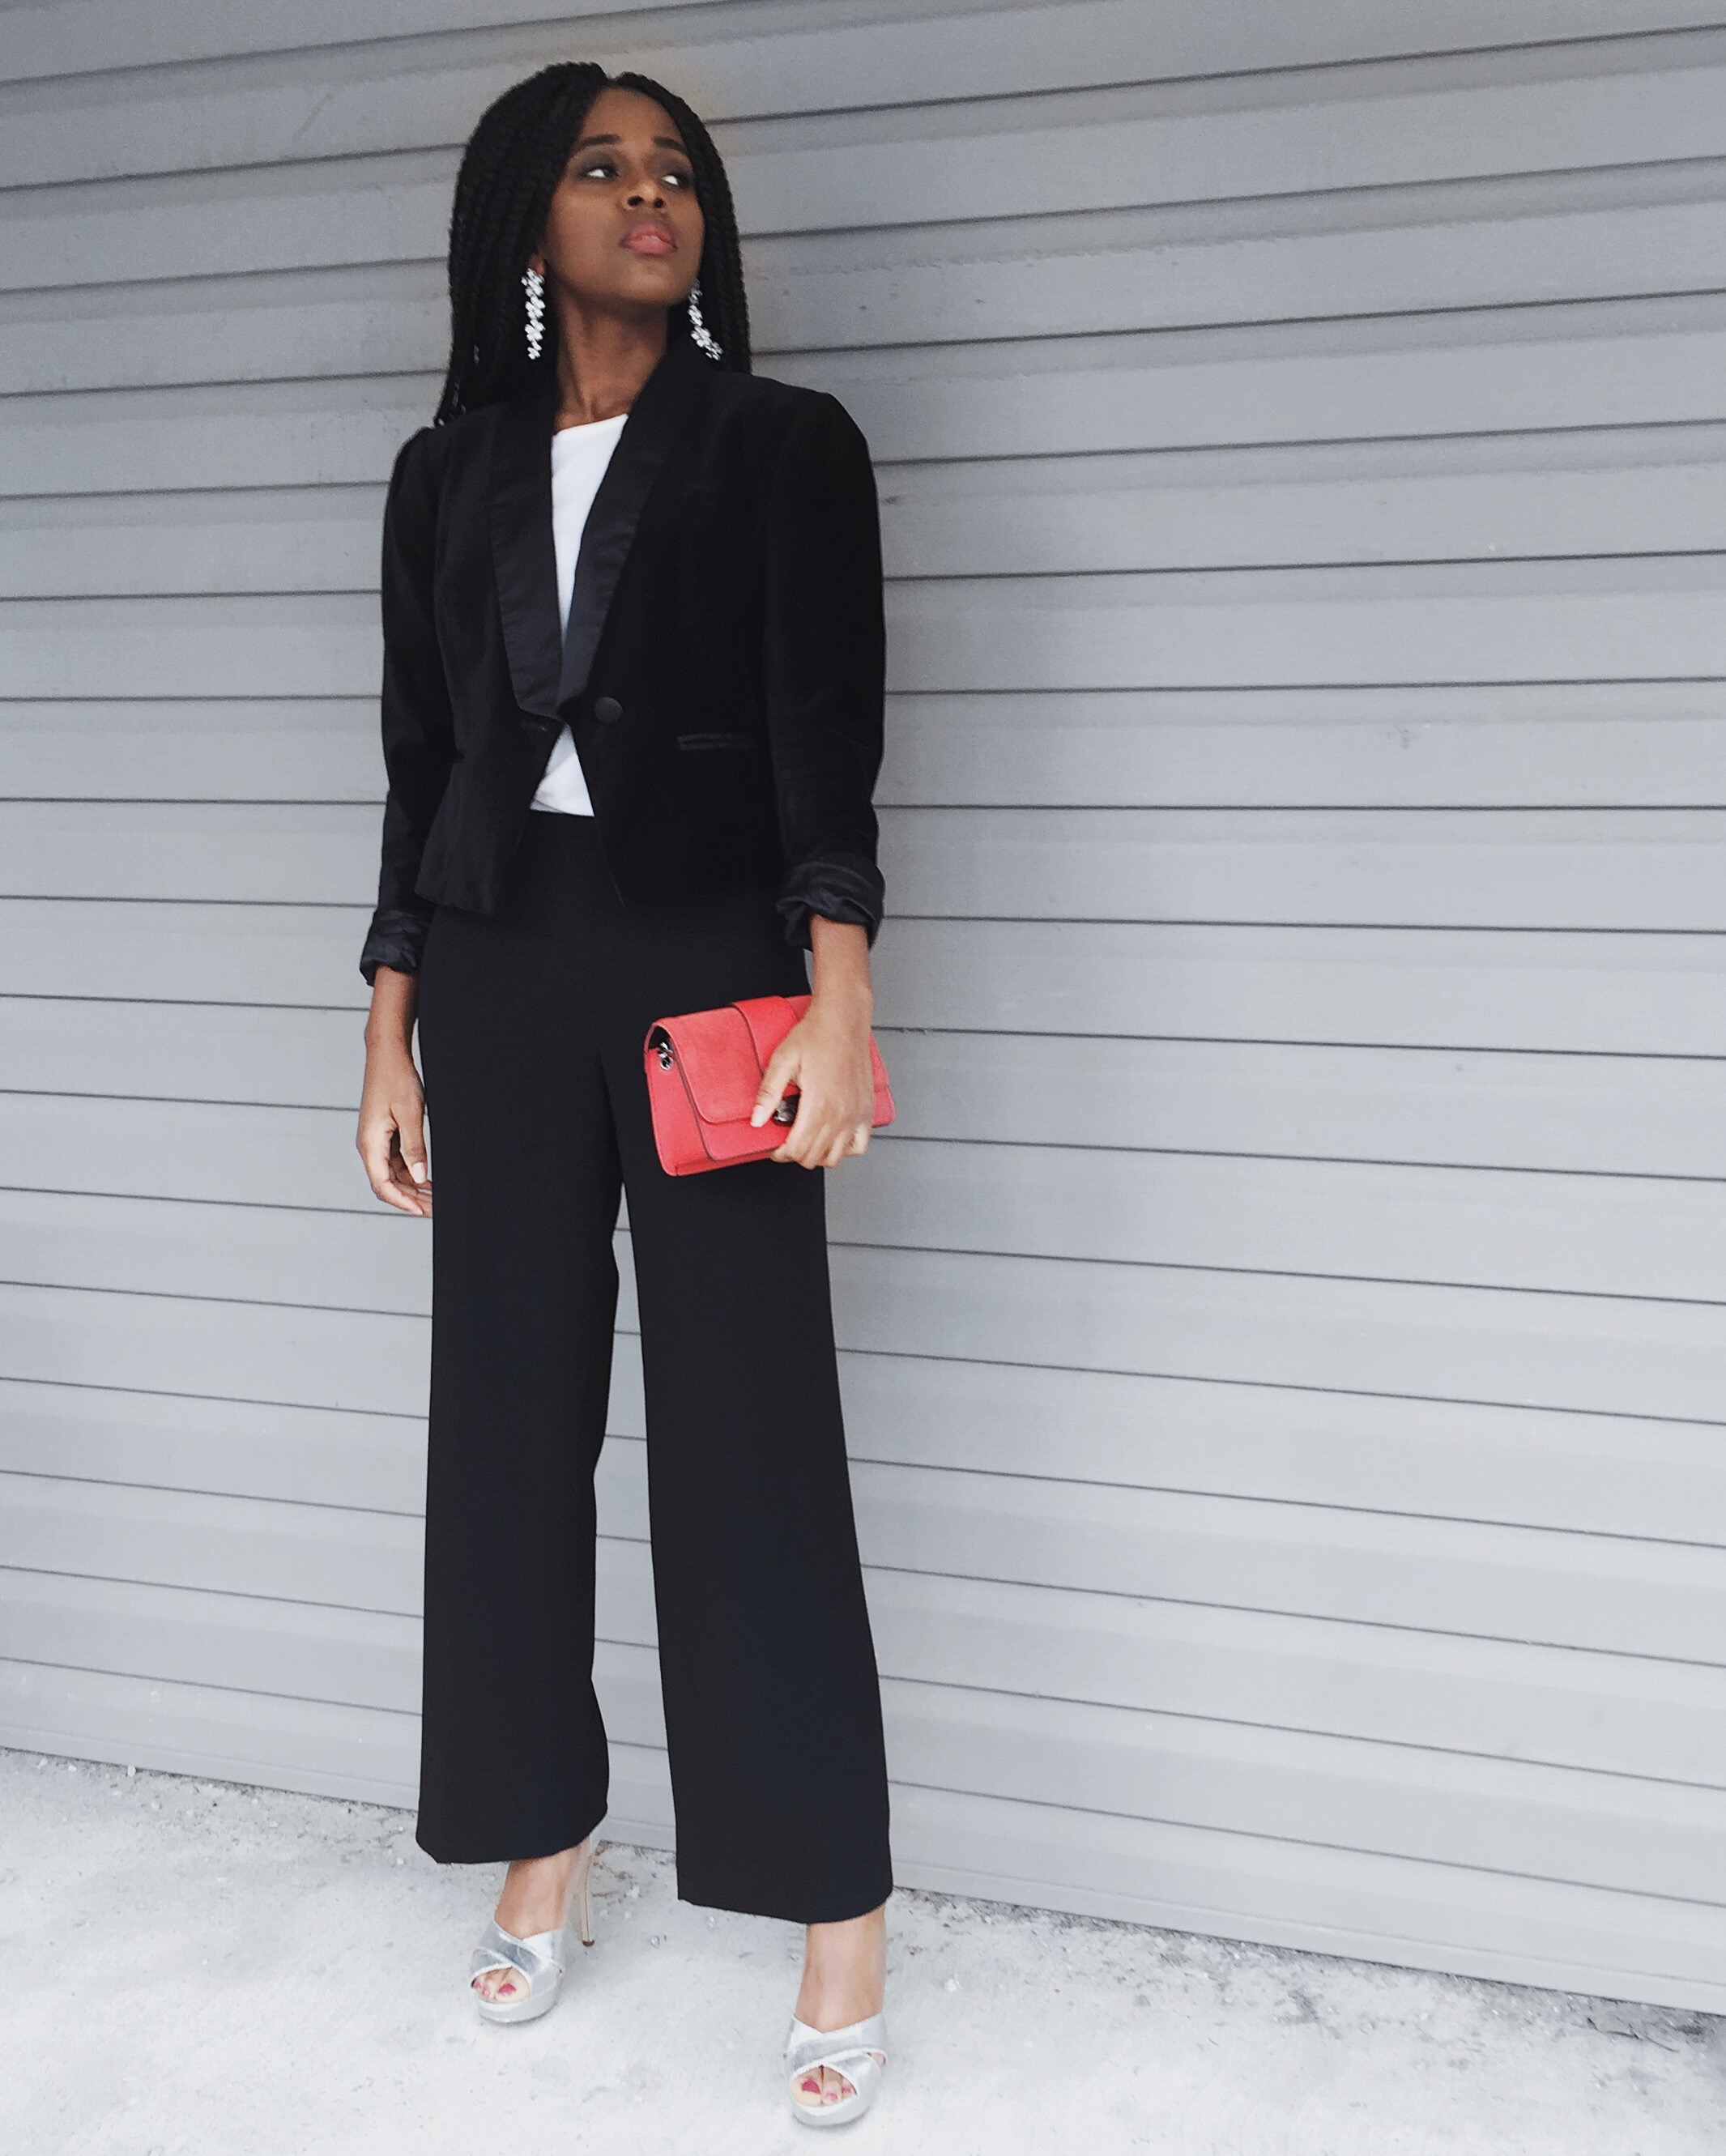 white t-shirt, black blazer, black dress pants, silver heels, red purse